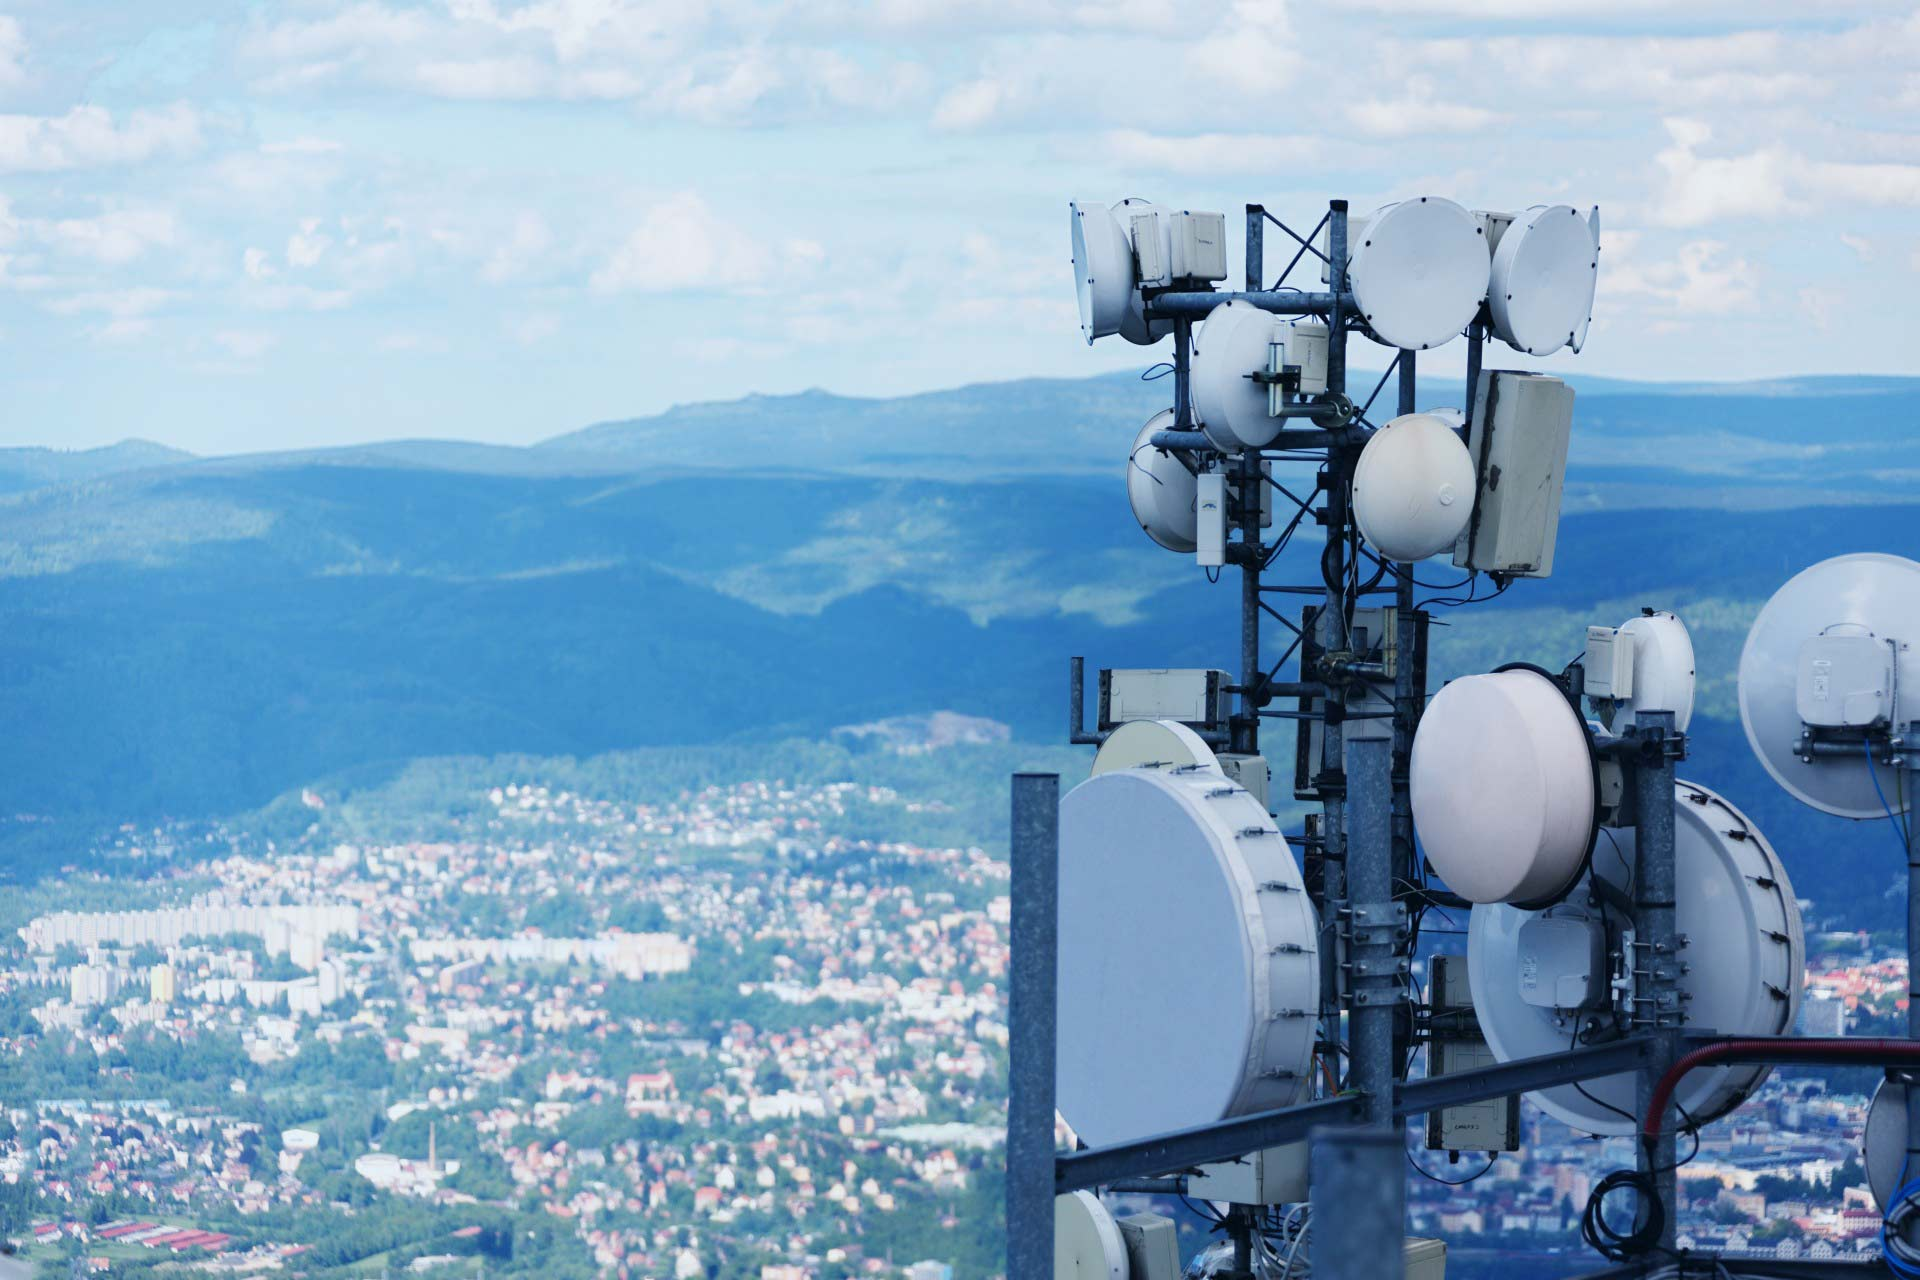 Aura Services - Telecommunication and Cell Tower Construction Services across Canada